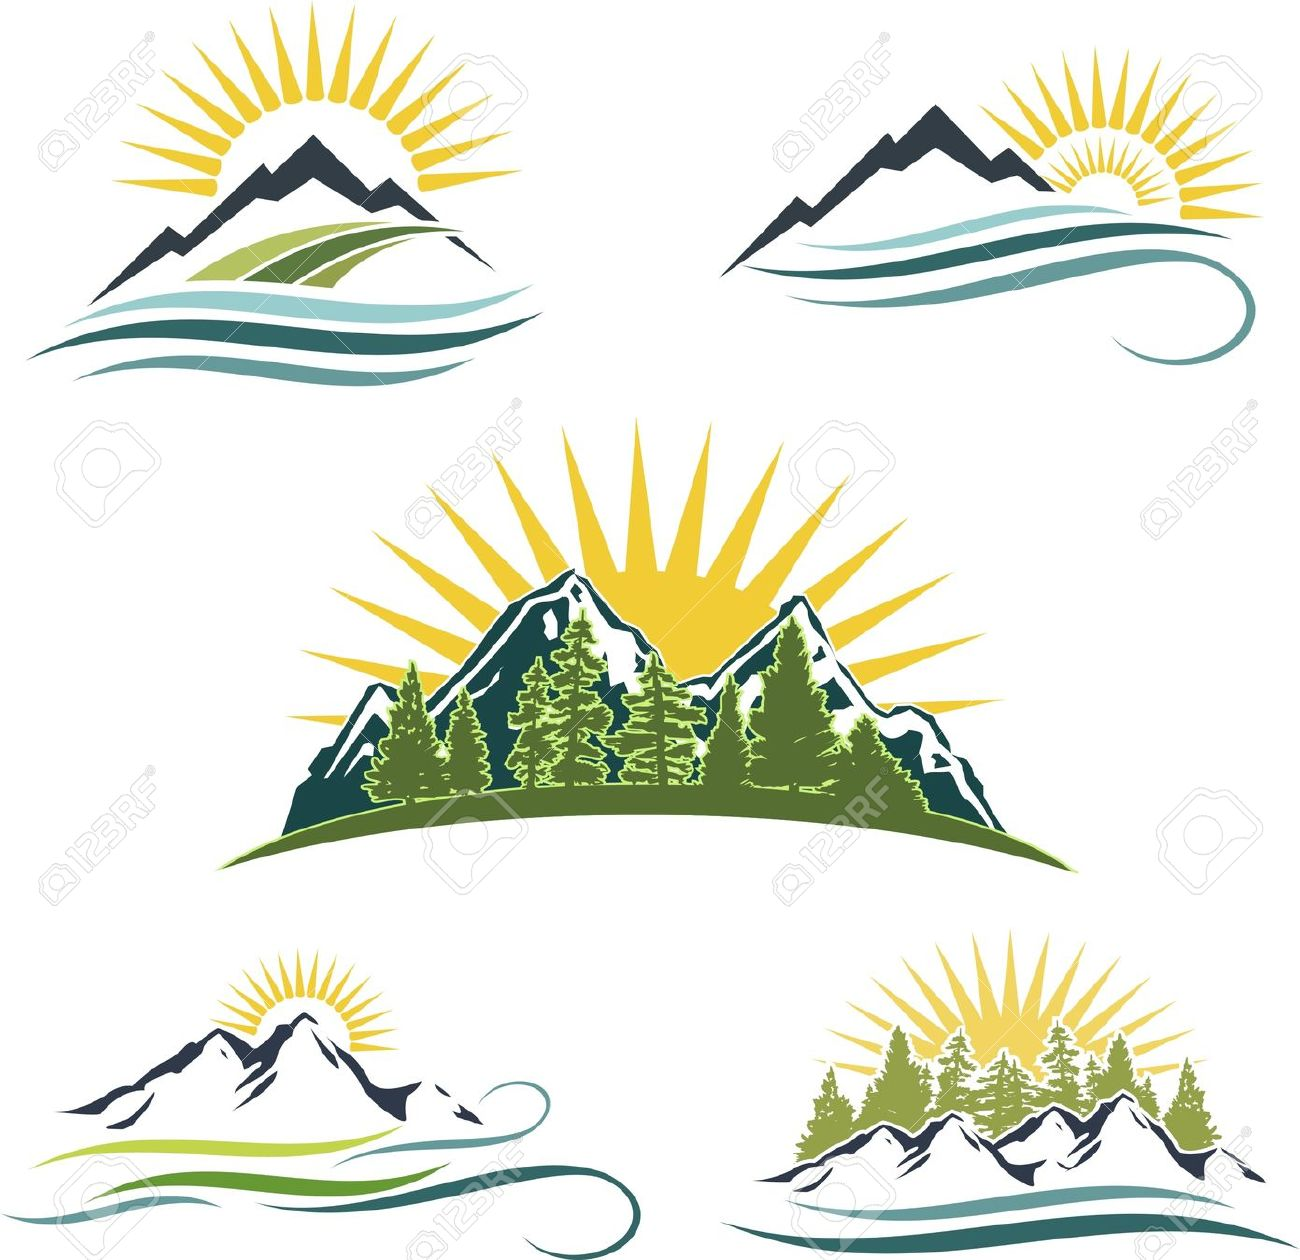 Mountain with river clipart.